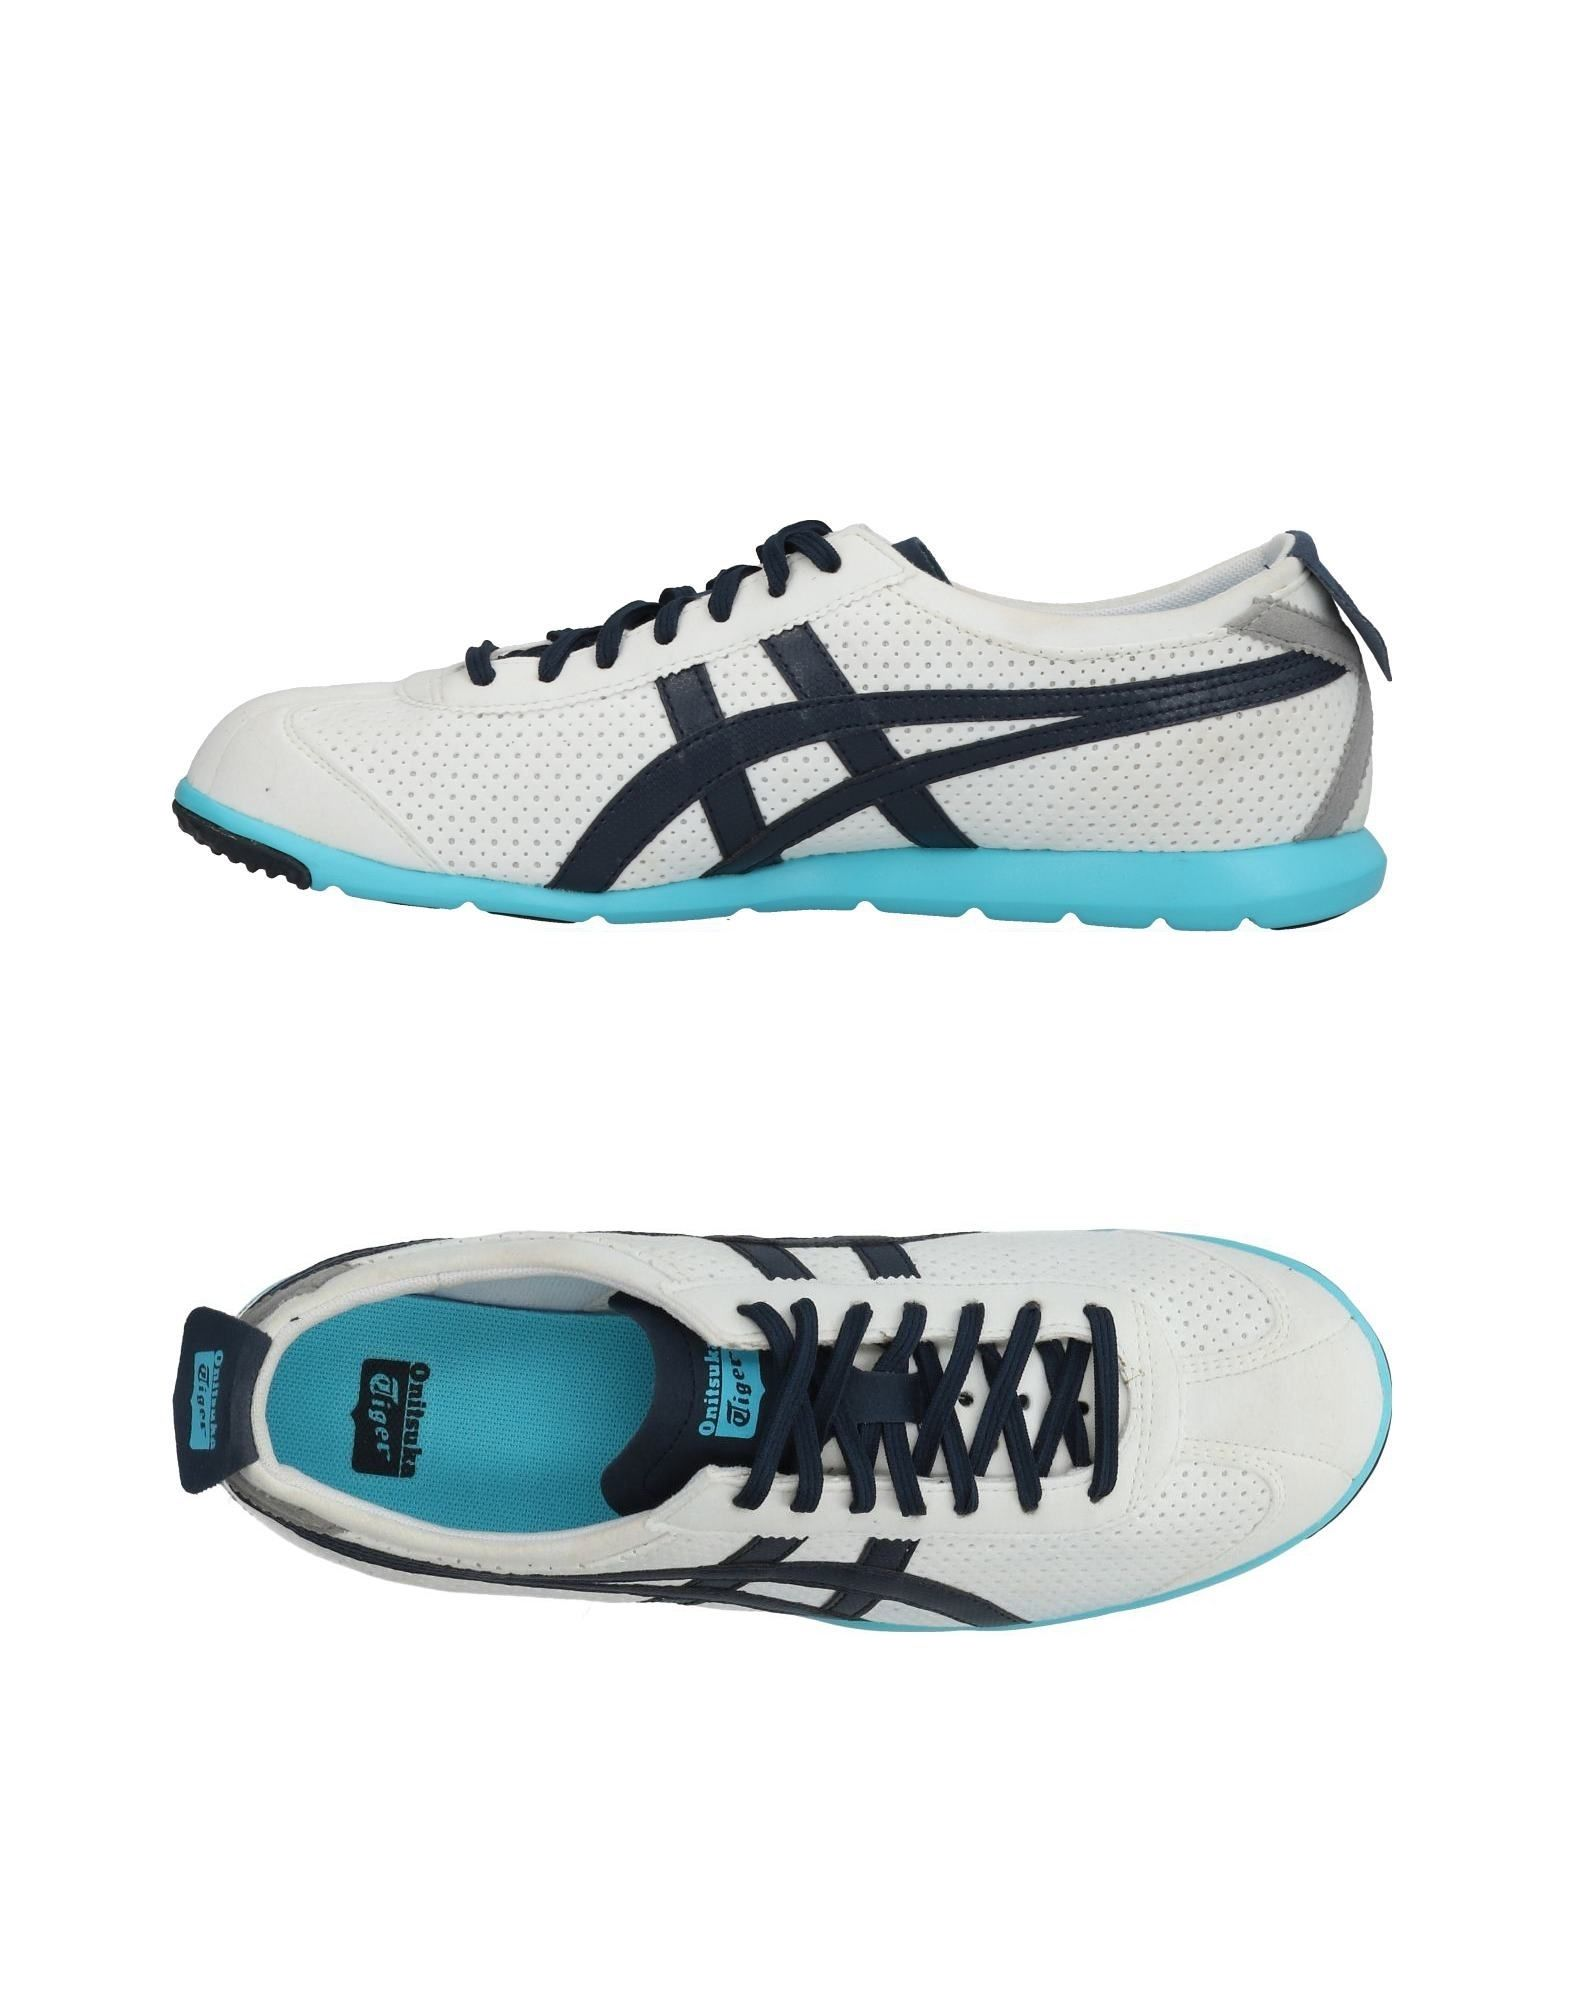 Sneakers Onitsuka Tiger Donna - Acquista online su